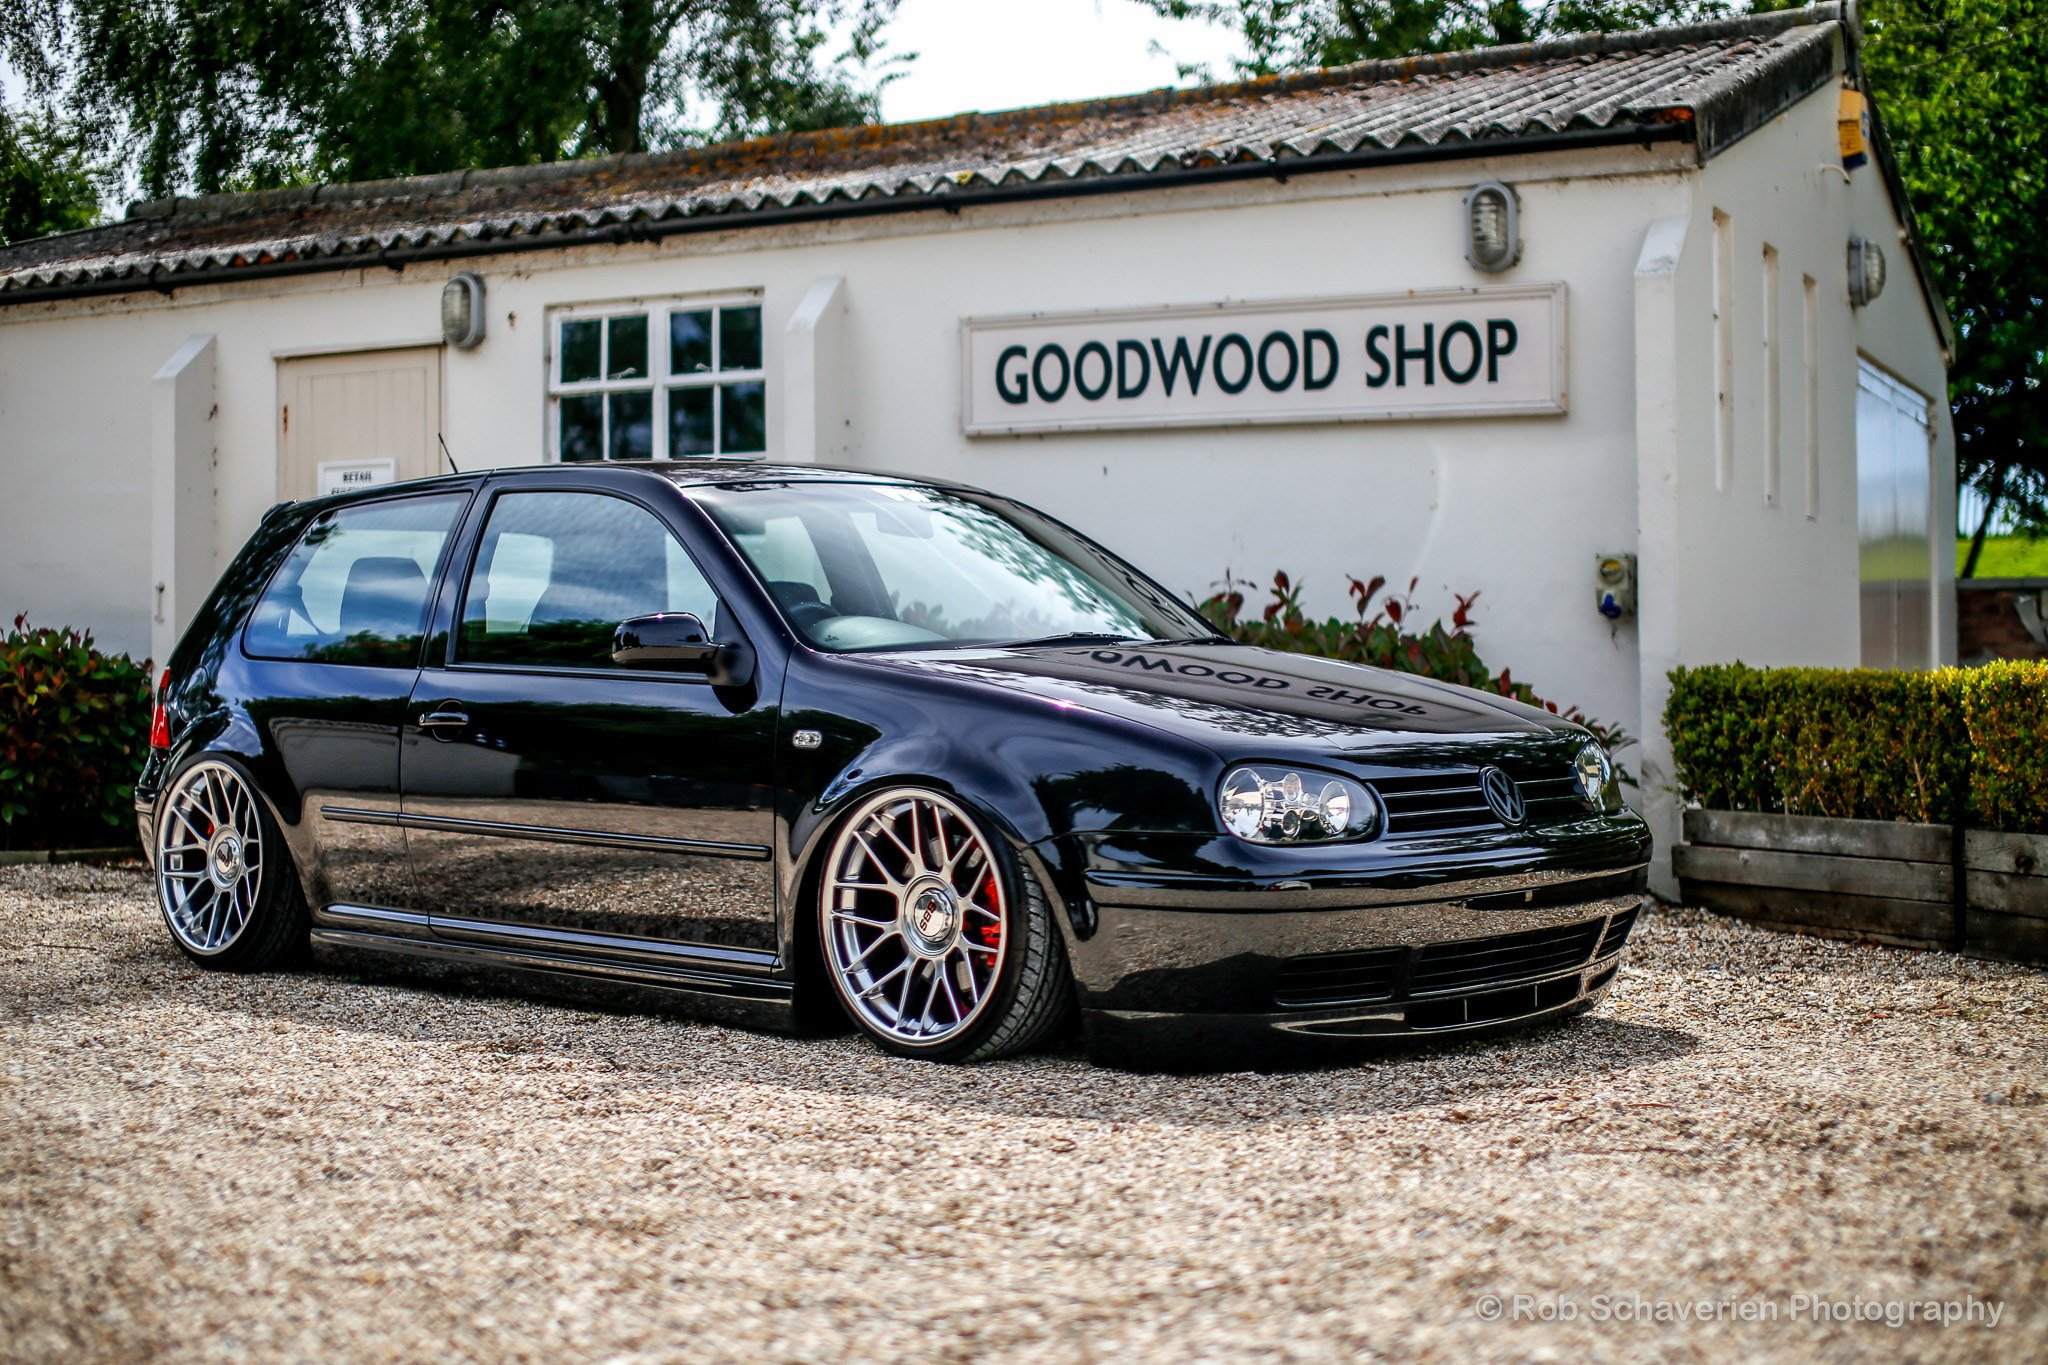 Picture Of Cars >> Volkswagen golf gti tuning cars germany wallpaper | 2048x1365 | 505474 | WallpaperUP